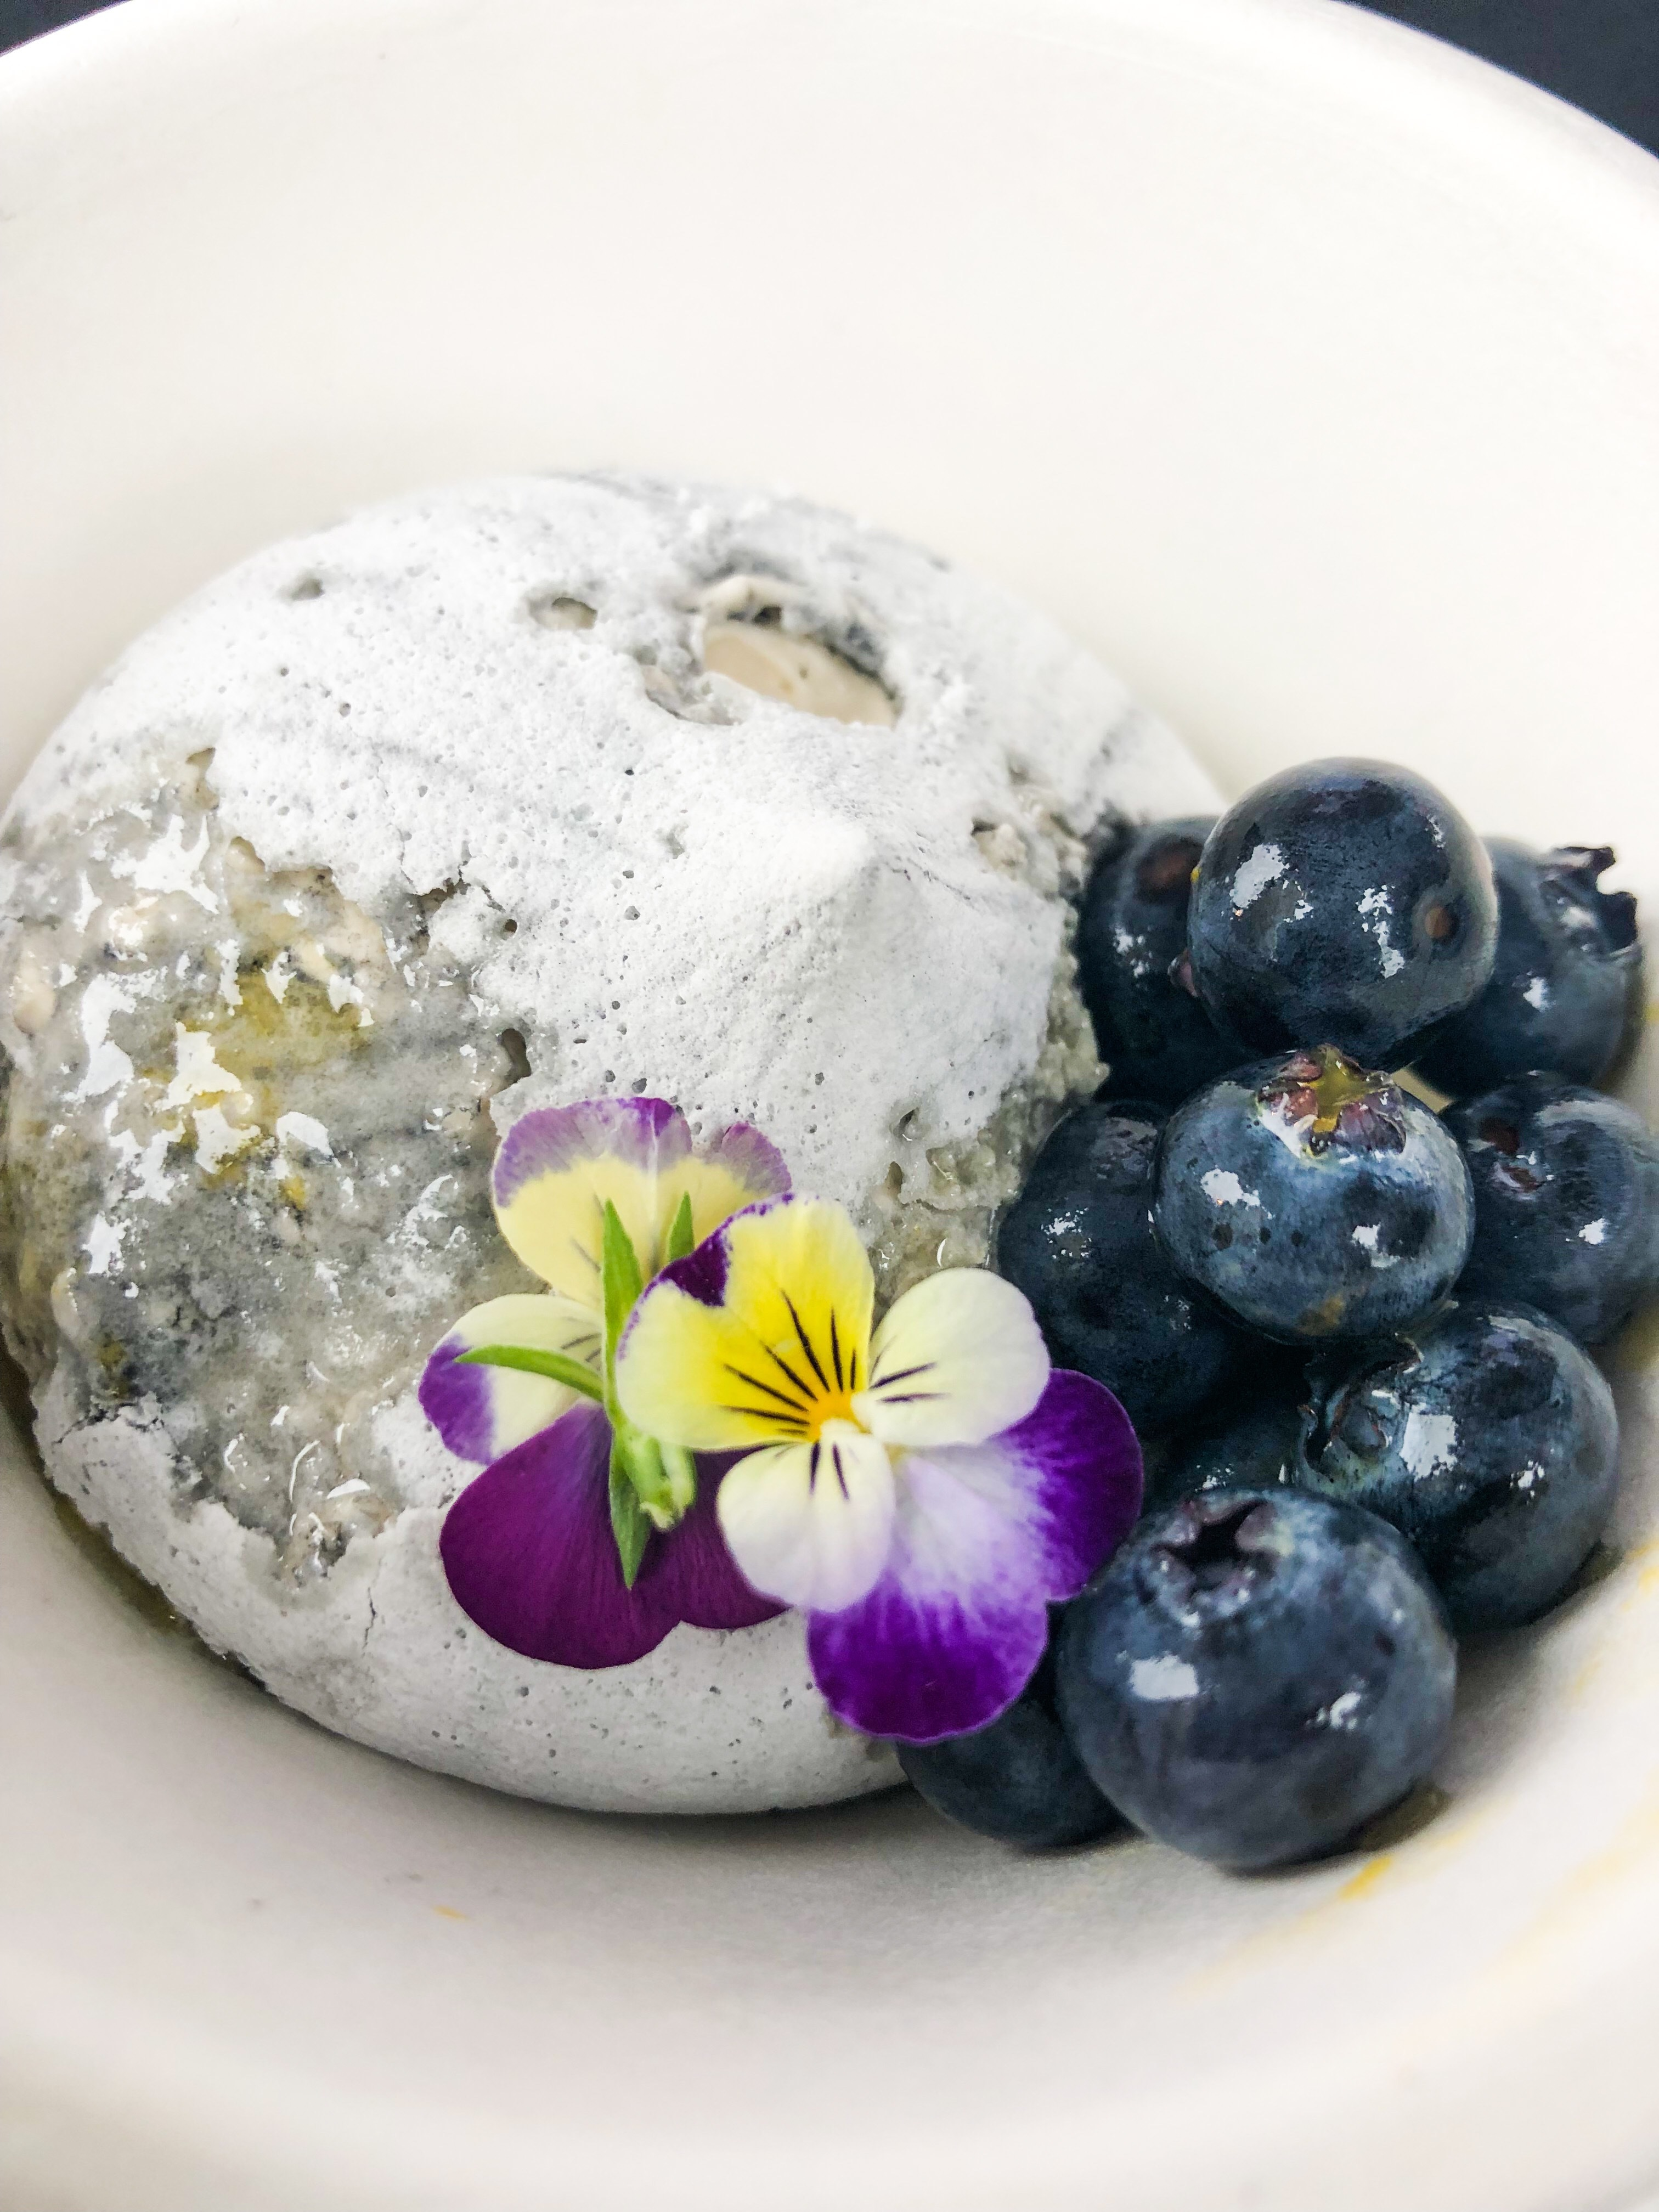 A picture of a meringue-looking pavlova with an edible flower and fresh blueberries